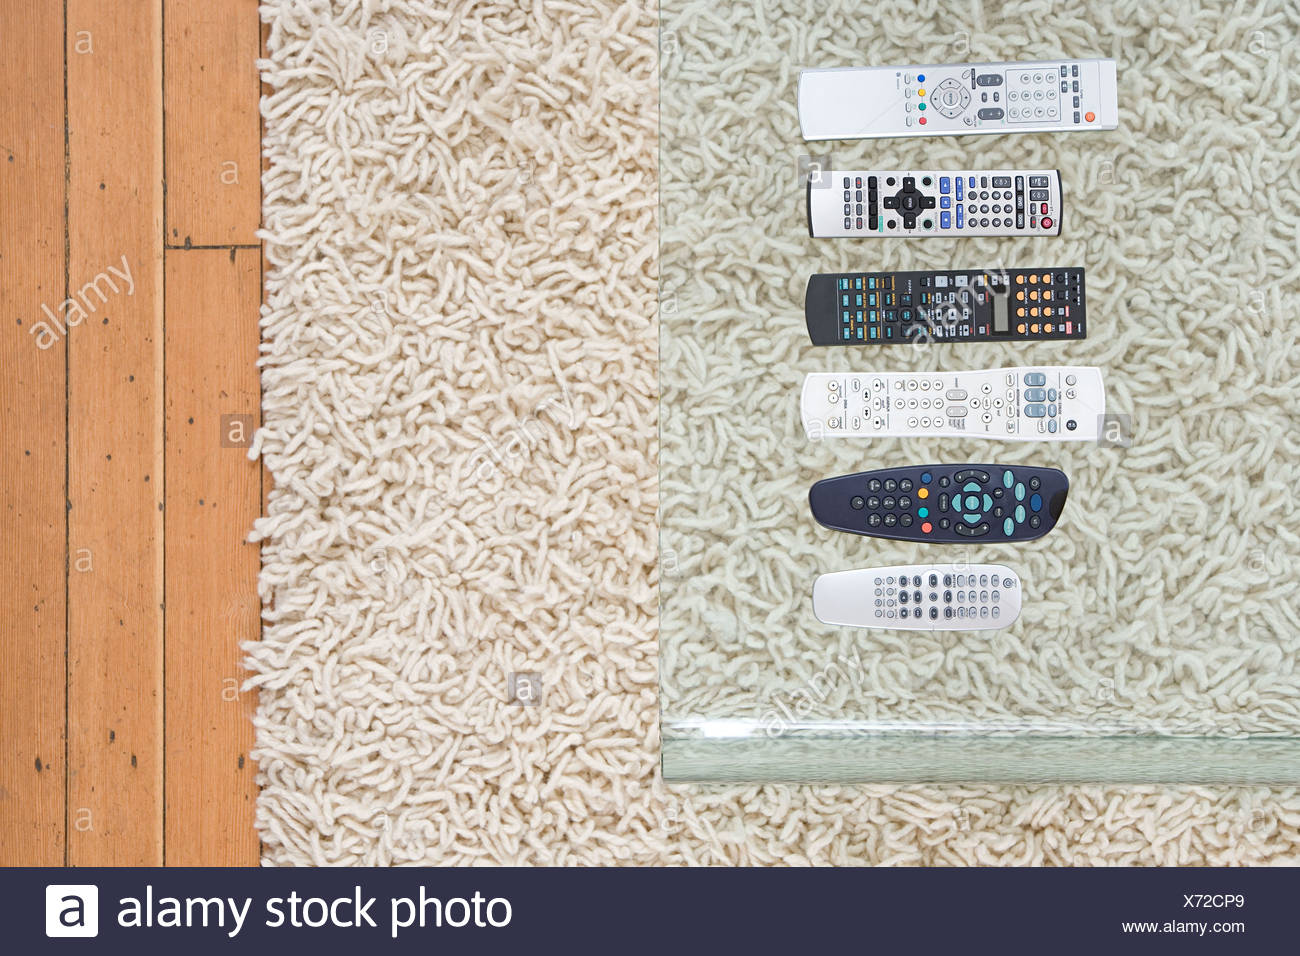 Remote controls on coffee table - Stock Image